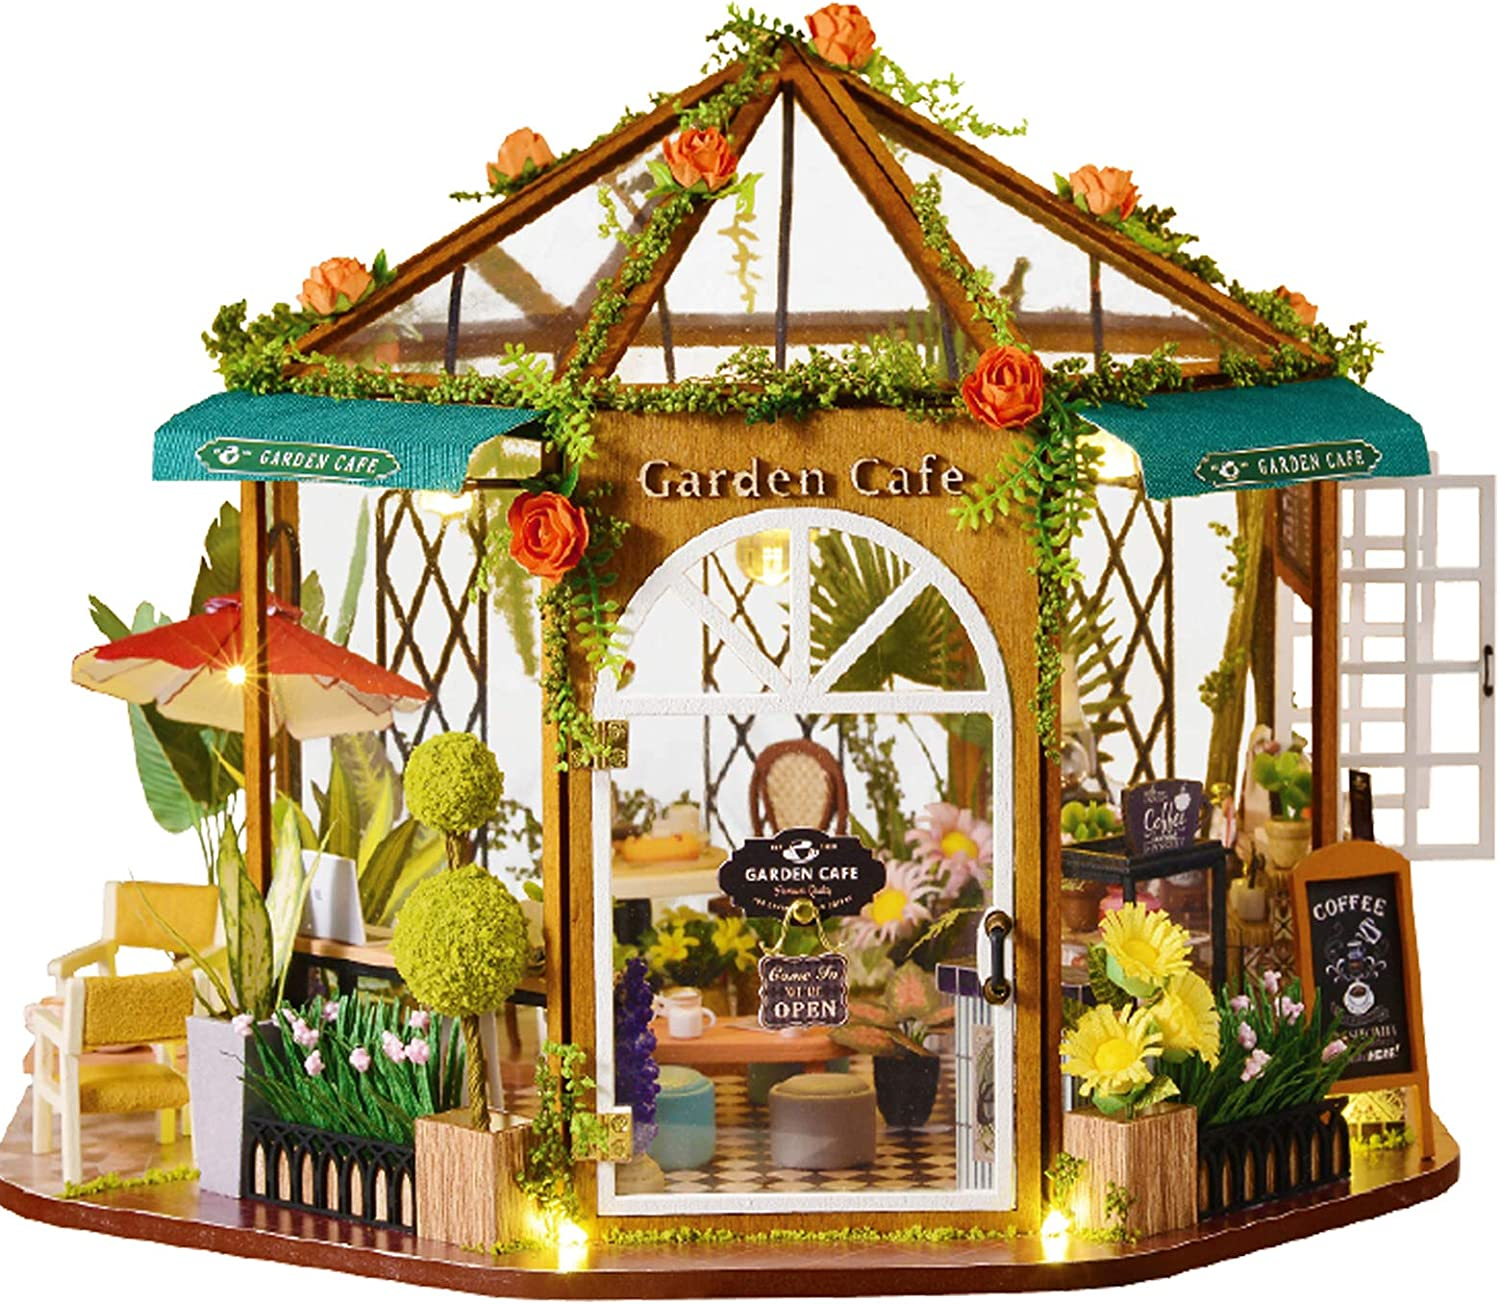 Dollhouse Miniature with Furniture,DIY 3D Wooden Doll House Kit Garden Coffee House Style Plus with Dust Cover and LED,1:24 Scale Creative Room Idea Best Gift for Children Friend Lover GD-001